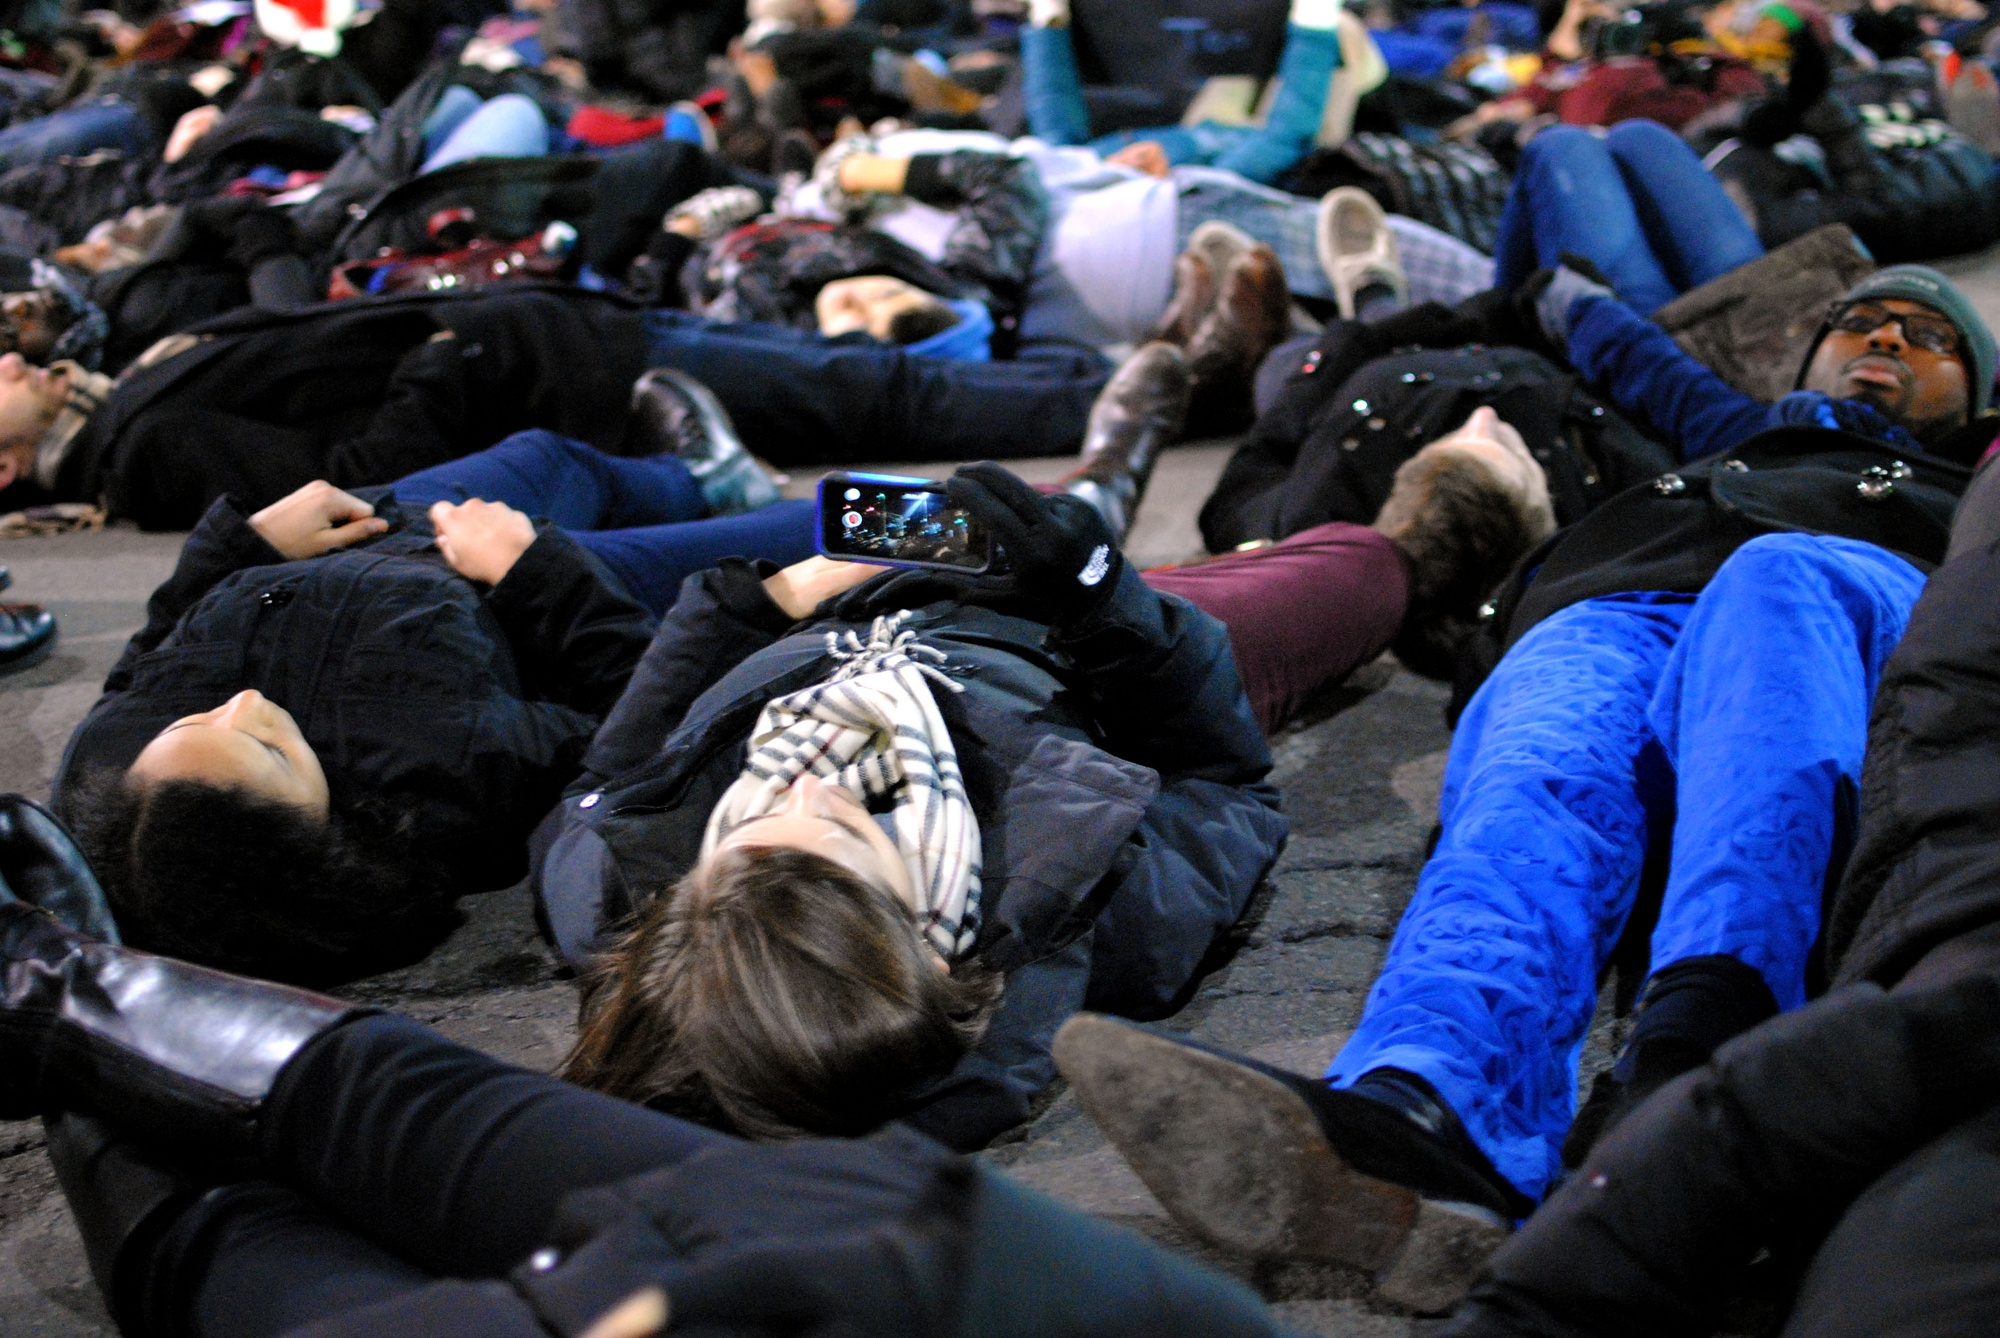 A protestor takes a photo during a die-in in Central Square on Friday evening as a part of the 'March on Harvard' protest.